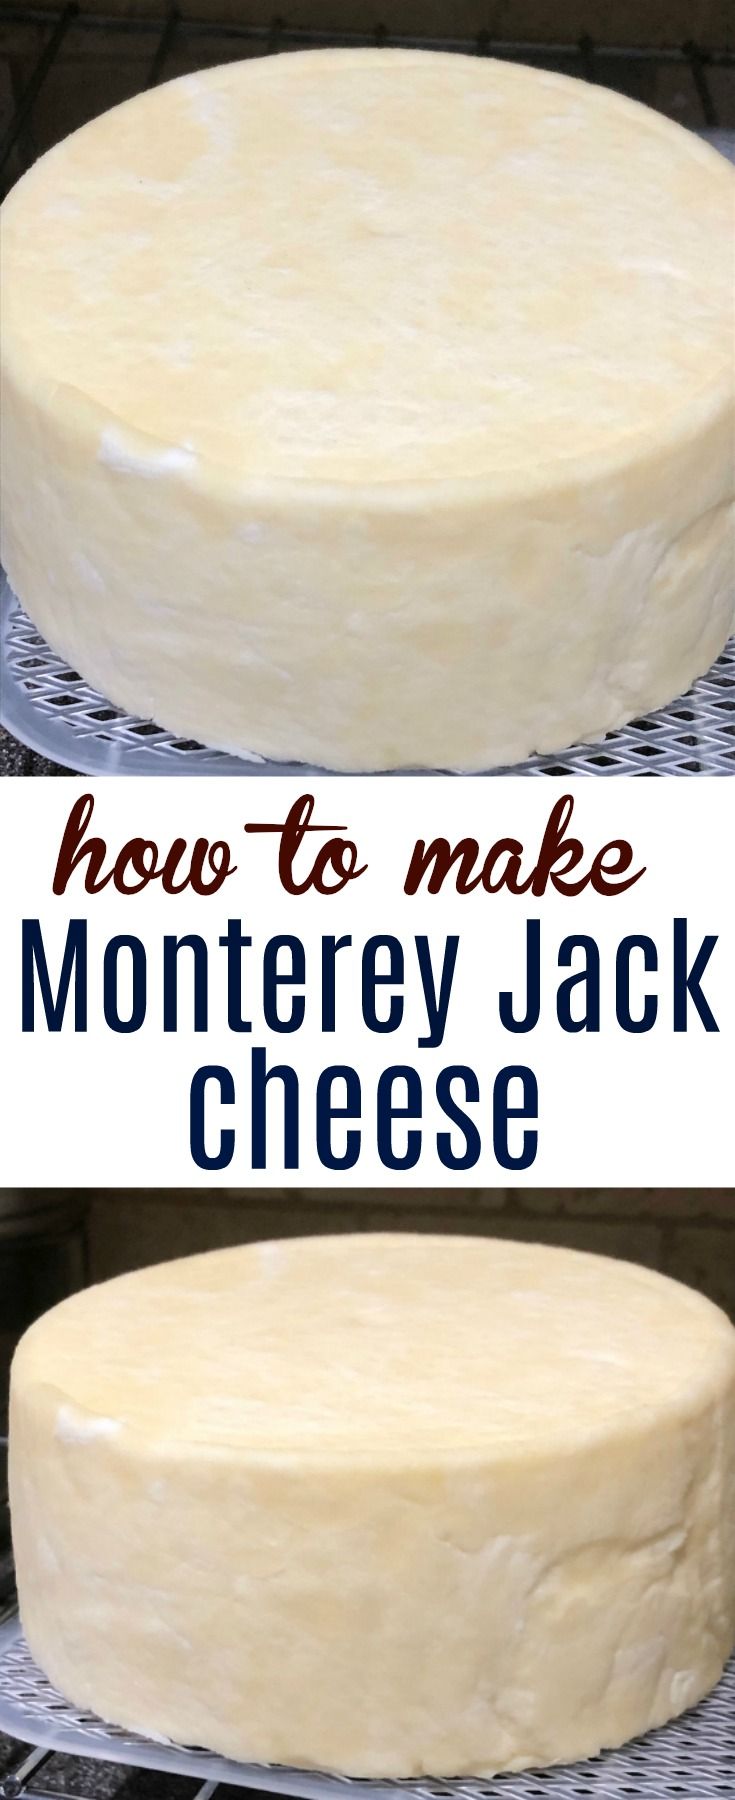 Learn how to make Monterey Jack cheese at home with these easy step-by-step instructions complete with pictures and supply list.